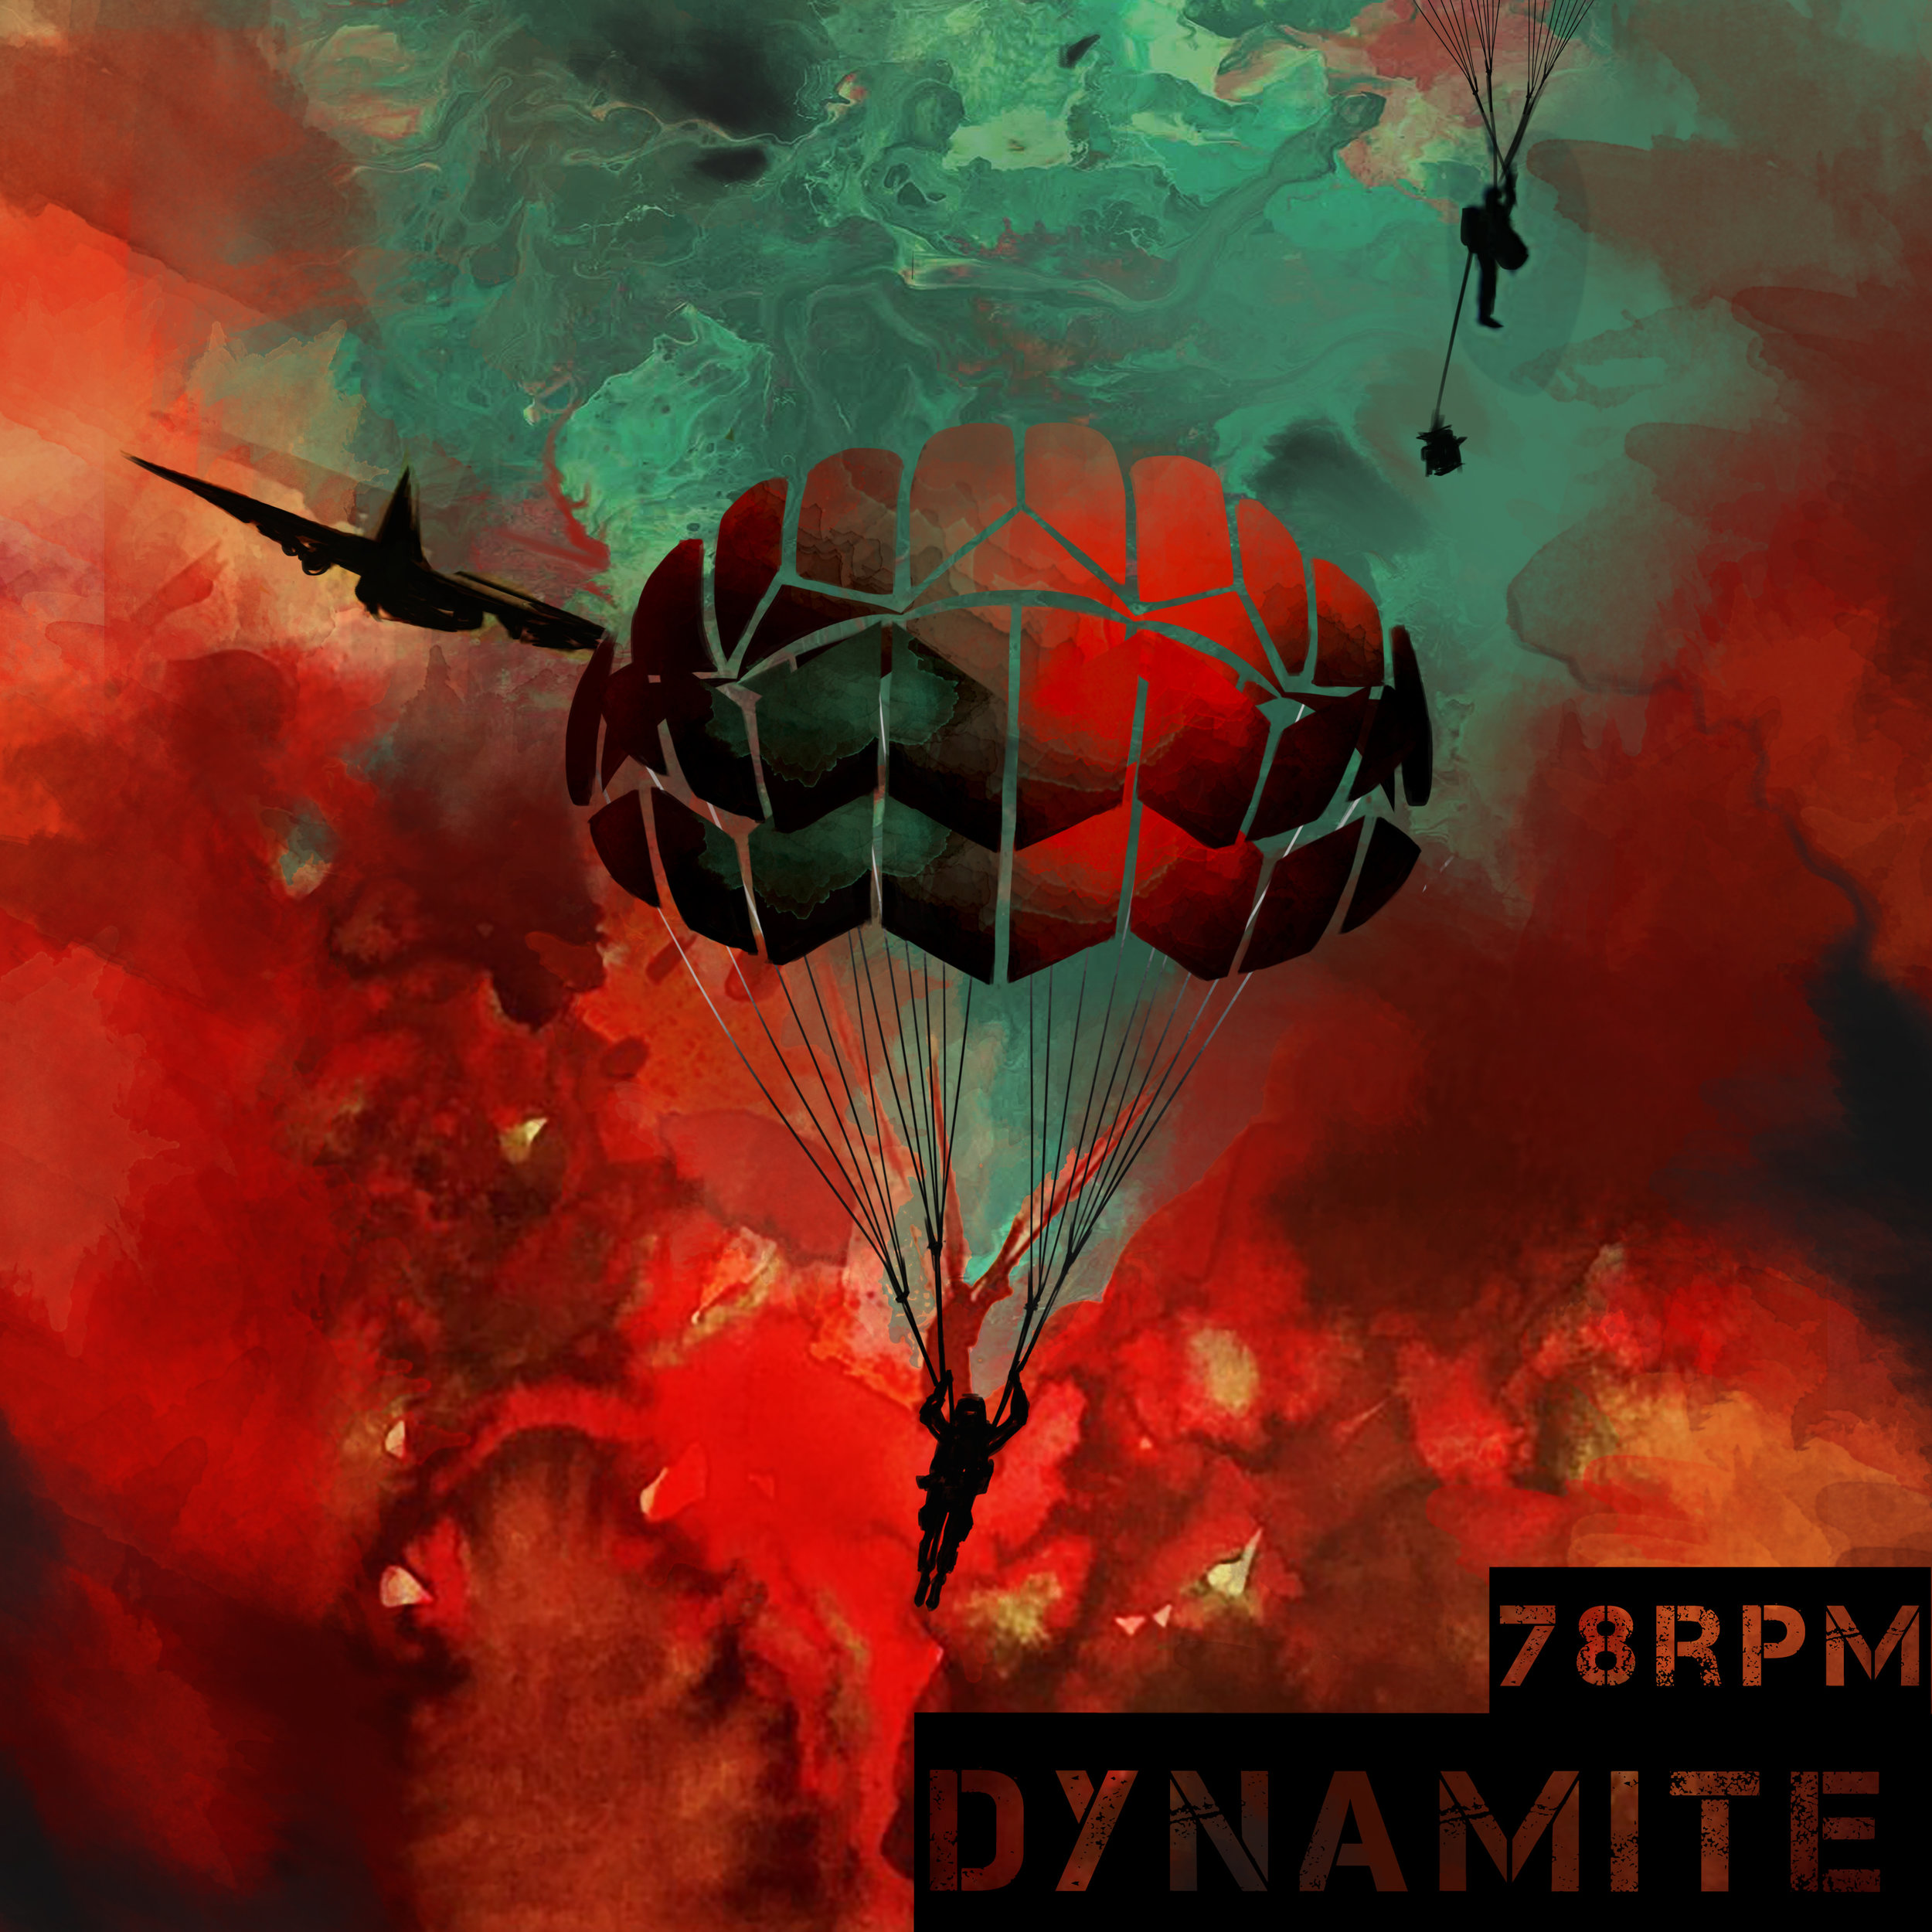 78rpm's Dynamite - Dropping May 2017